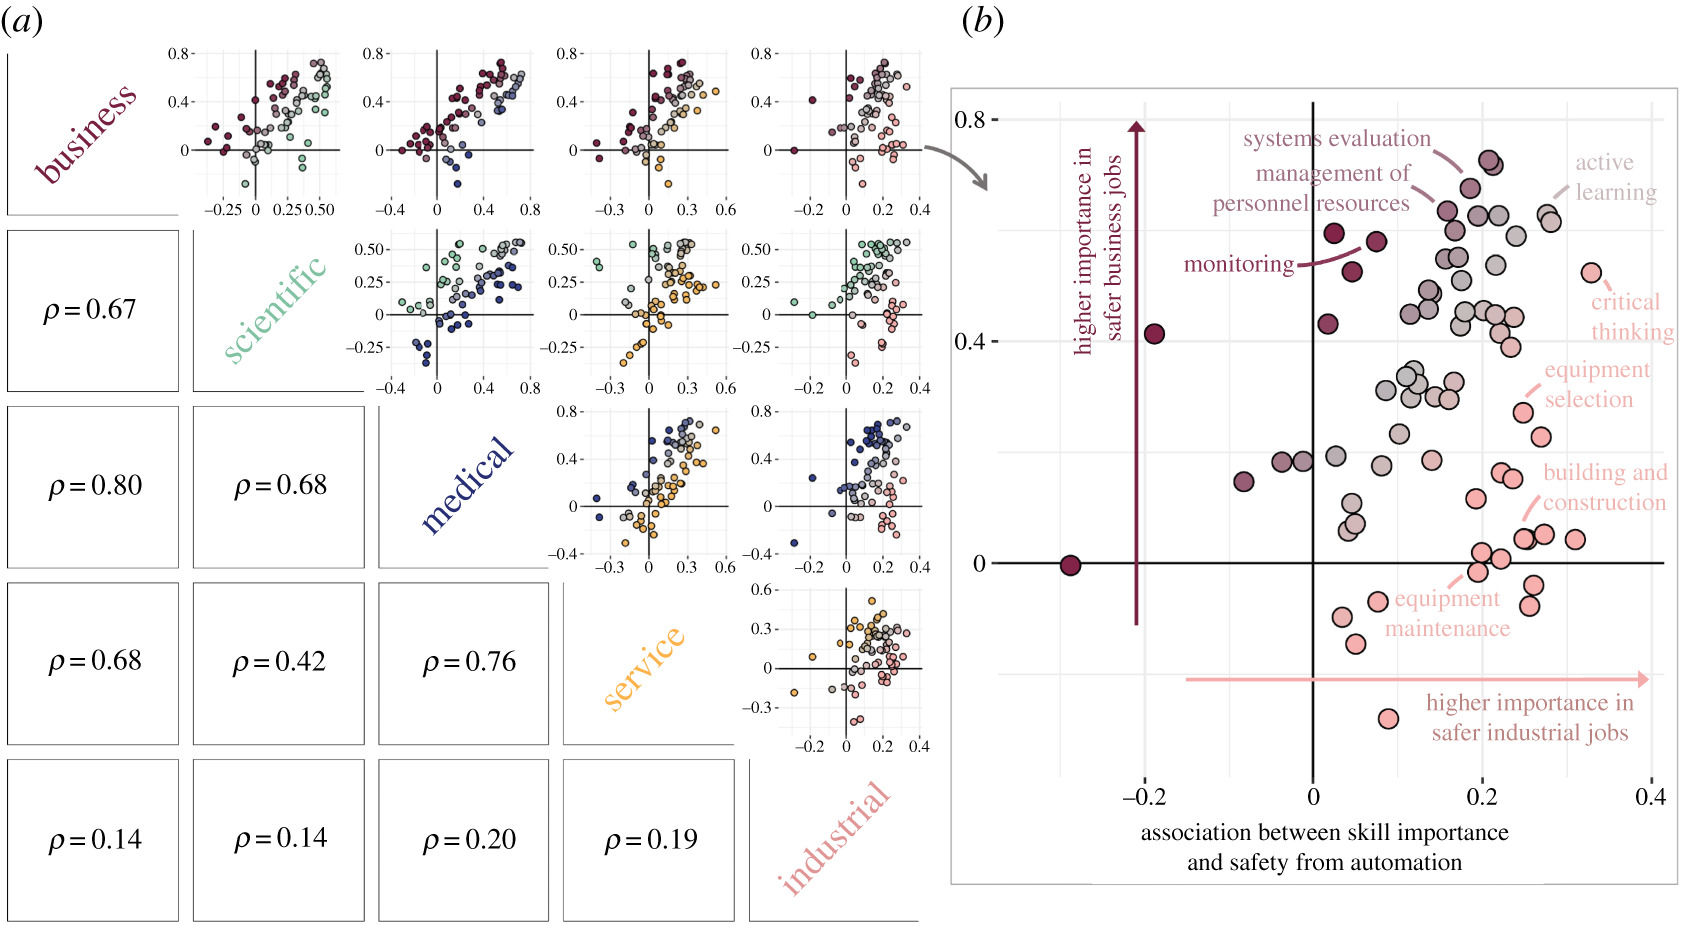 Network-driven differences in mobility and optimal transitions among